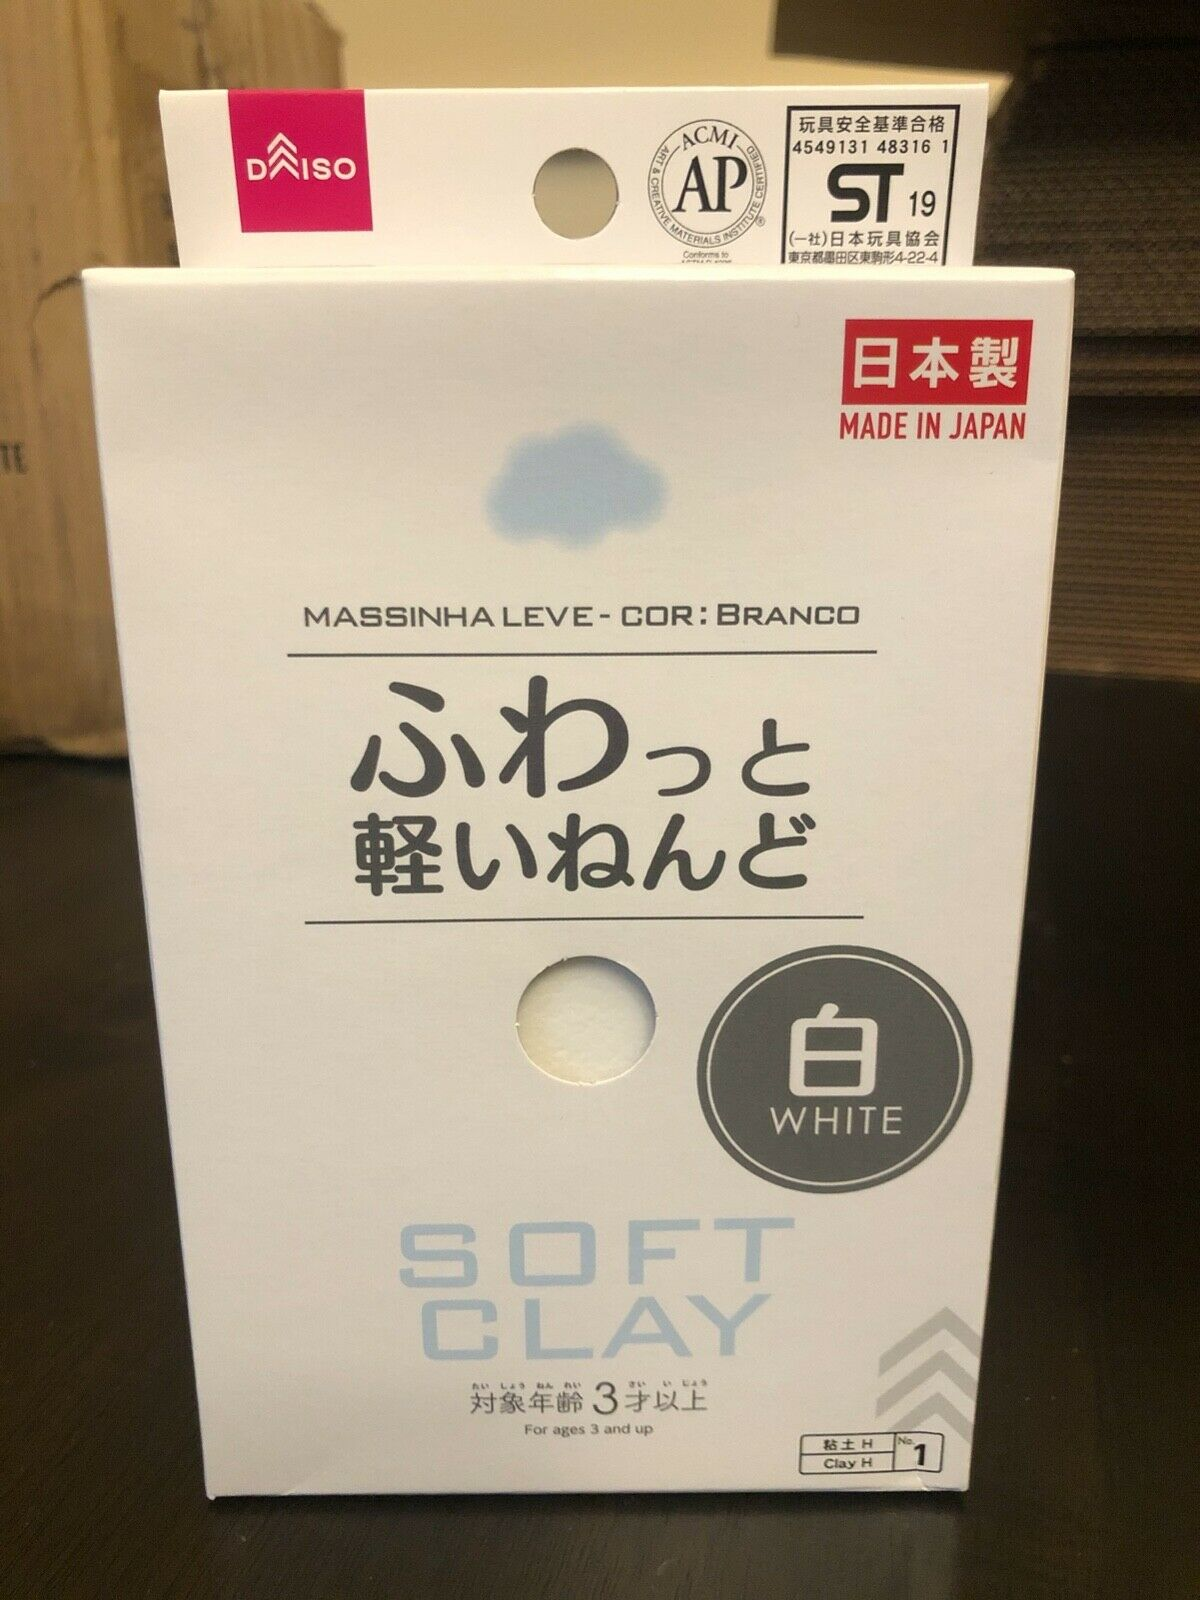 ♡  Authentic Daiso Clay - White ♡